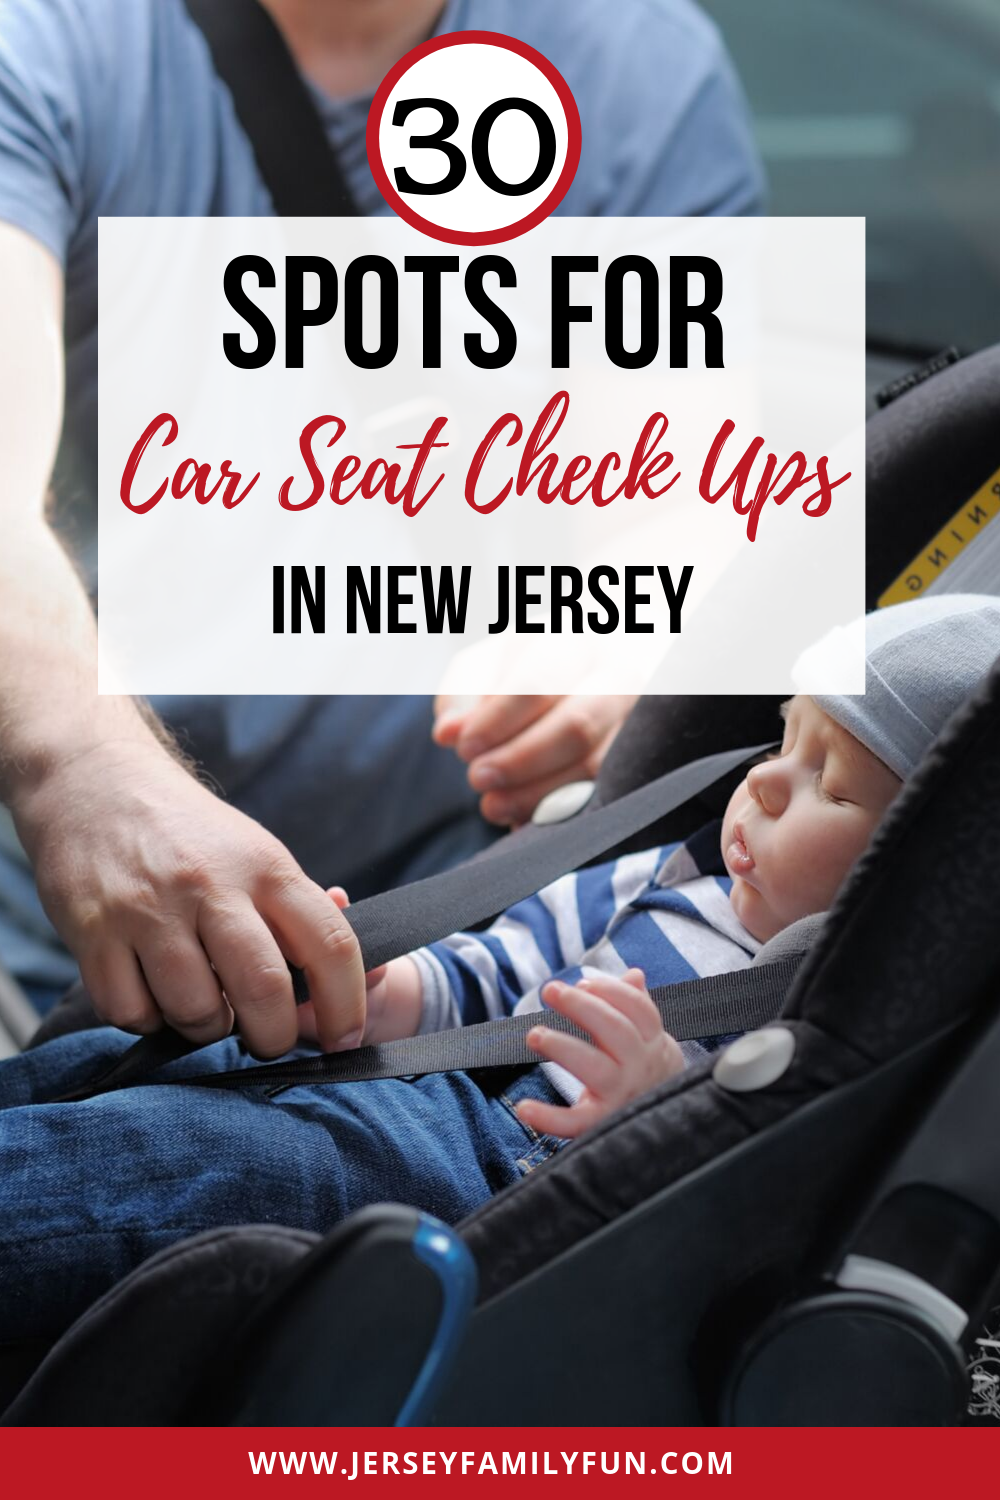 New Jersey Car Seat Inspection Locations Car seats, New